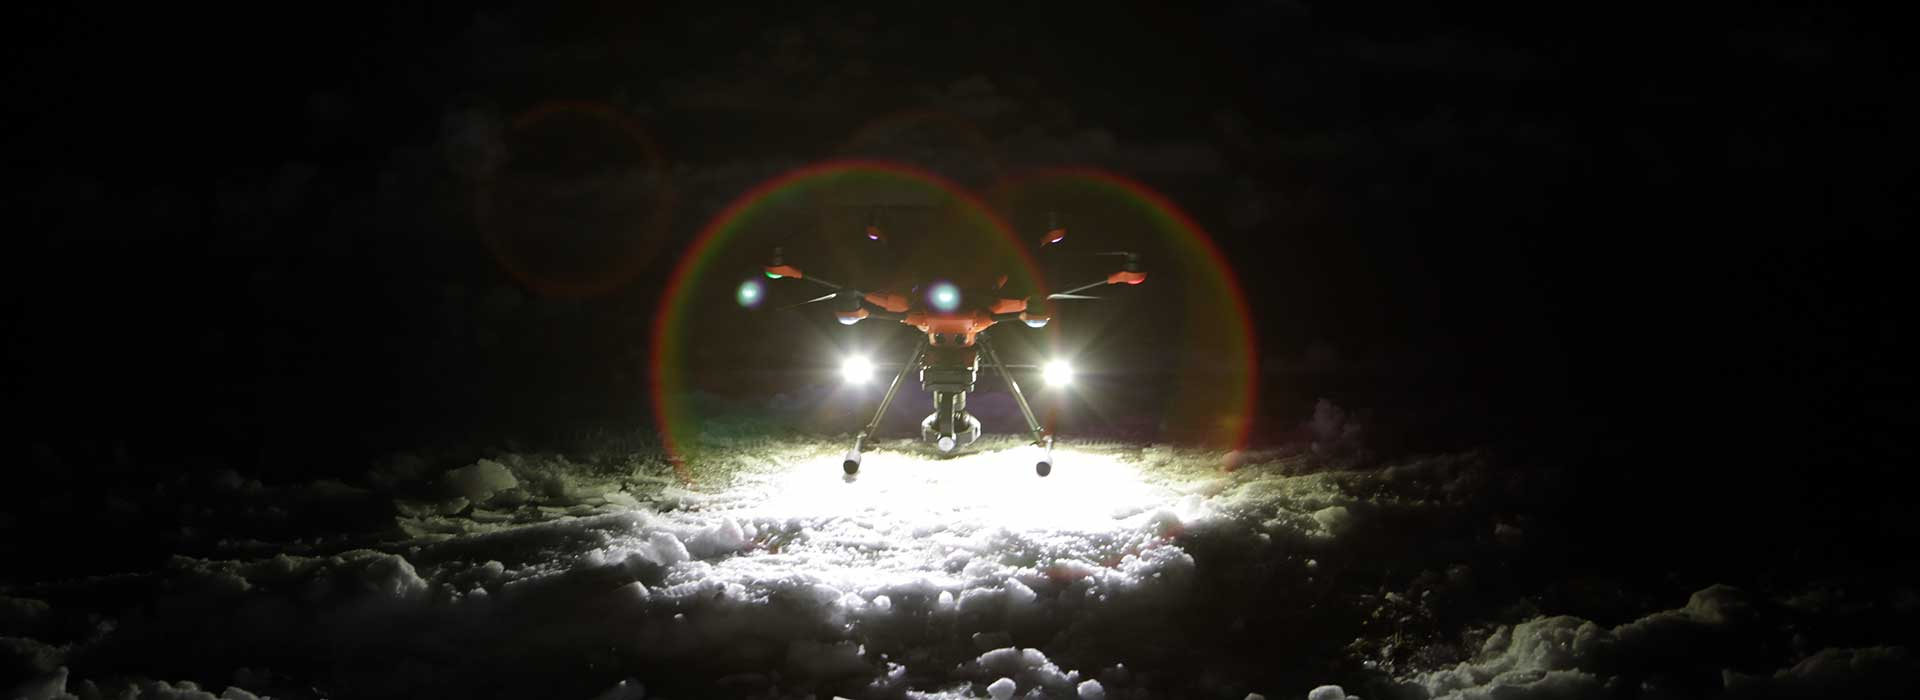 Yuneec H520 drone night flight